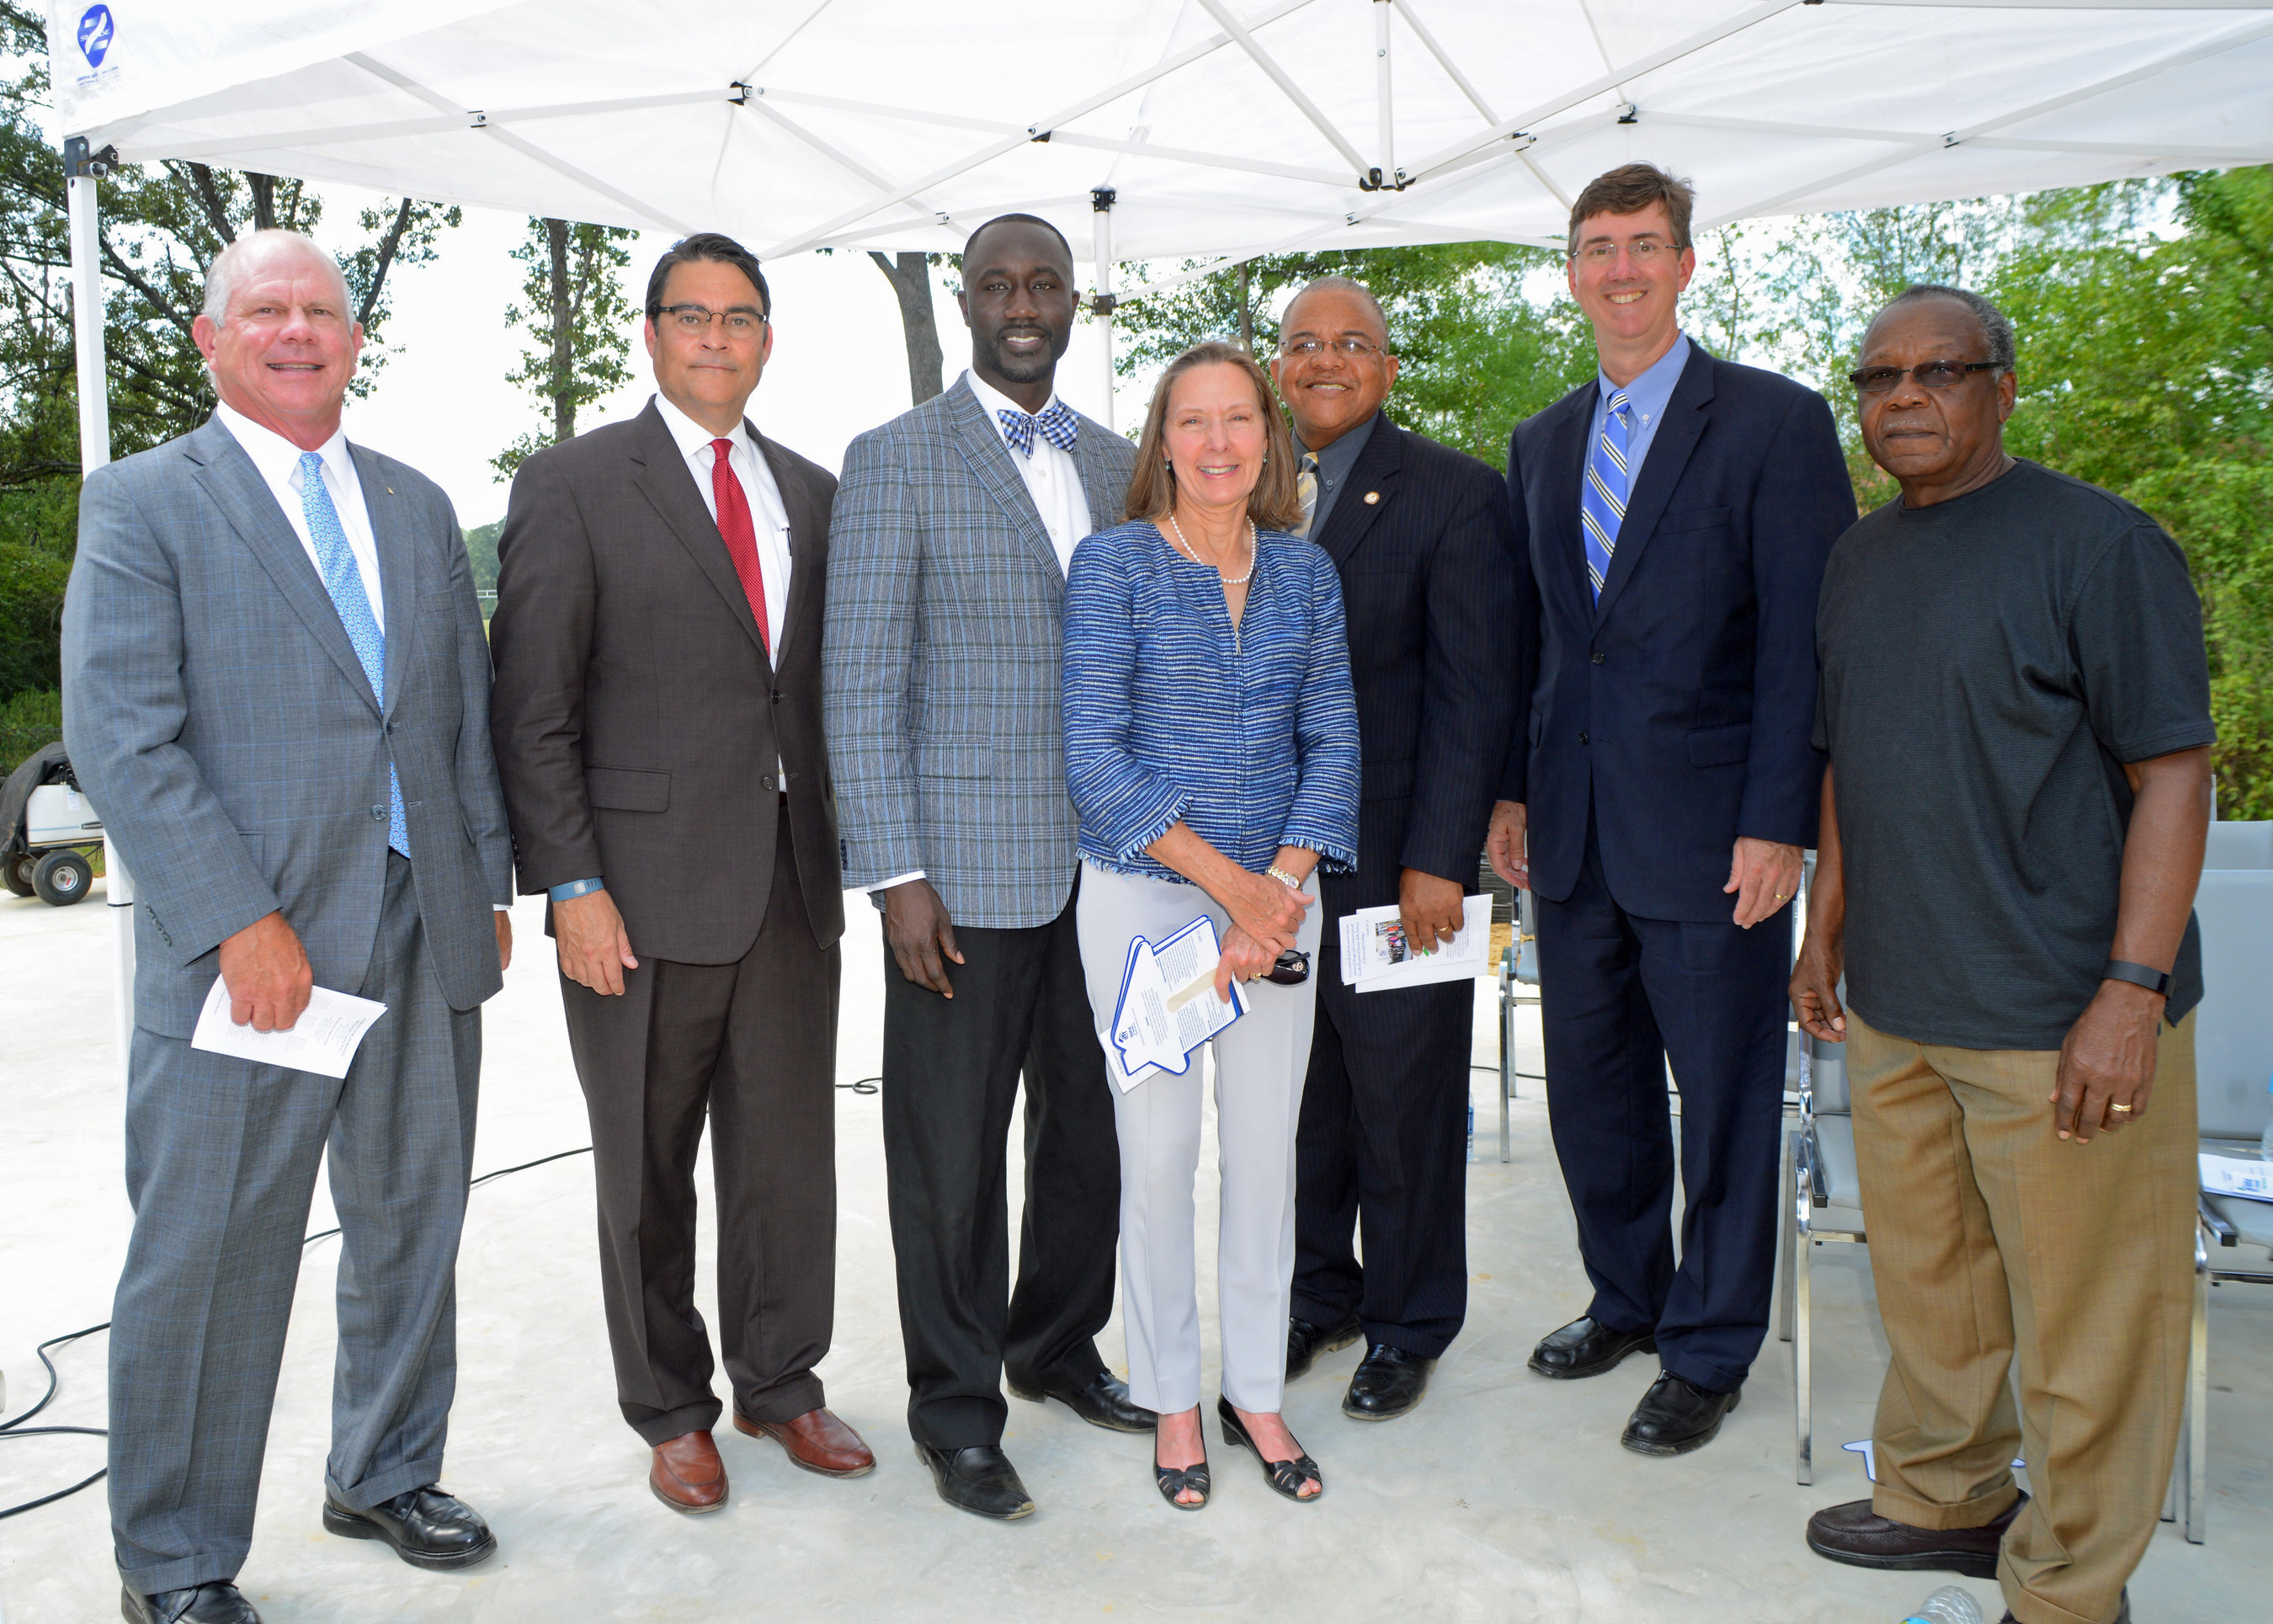 Habitat for Humanity Mississippi Capital Area was joined by Mayor Tony Yarber and representatives from FHLB Dallas to announce the start of revitalization efforts for a blighted area of Jackson, Miss.